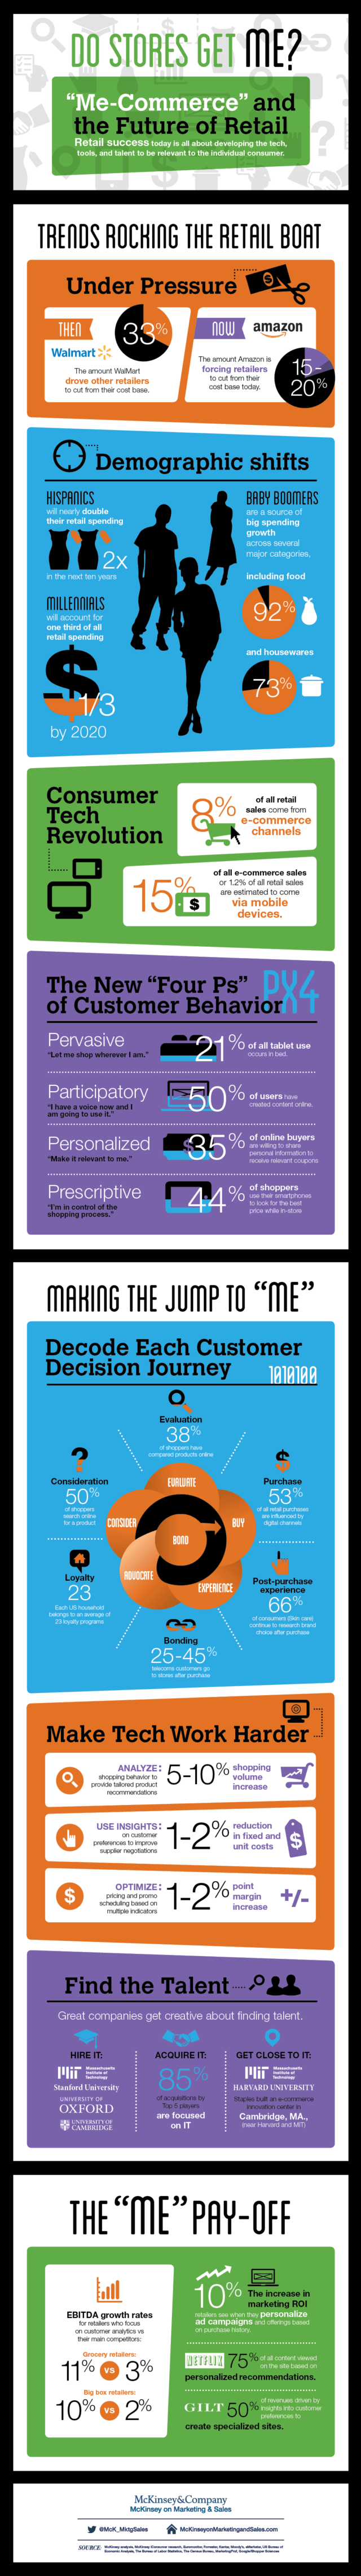 me-commerce-retail-infographic